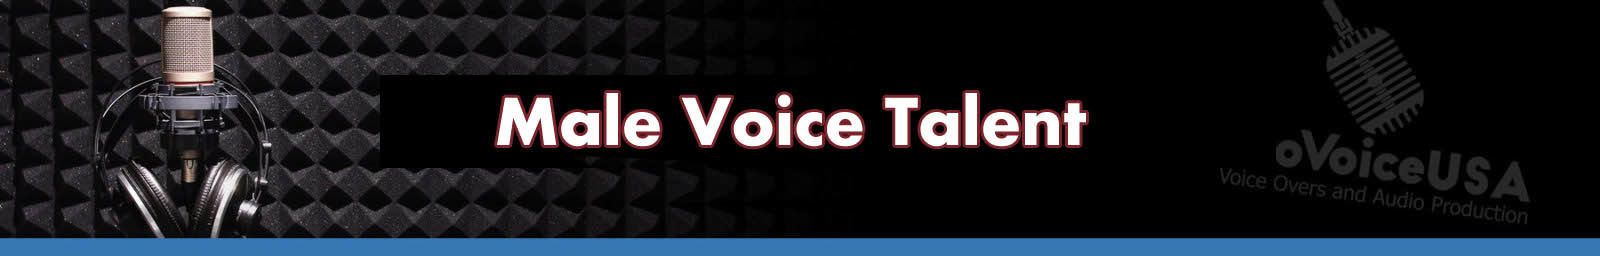 Male Voice Talent Header